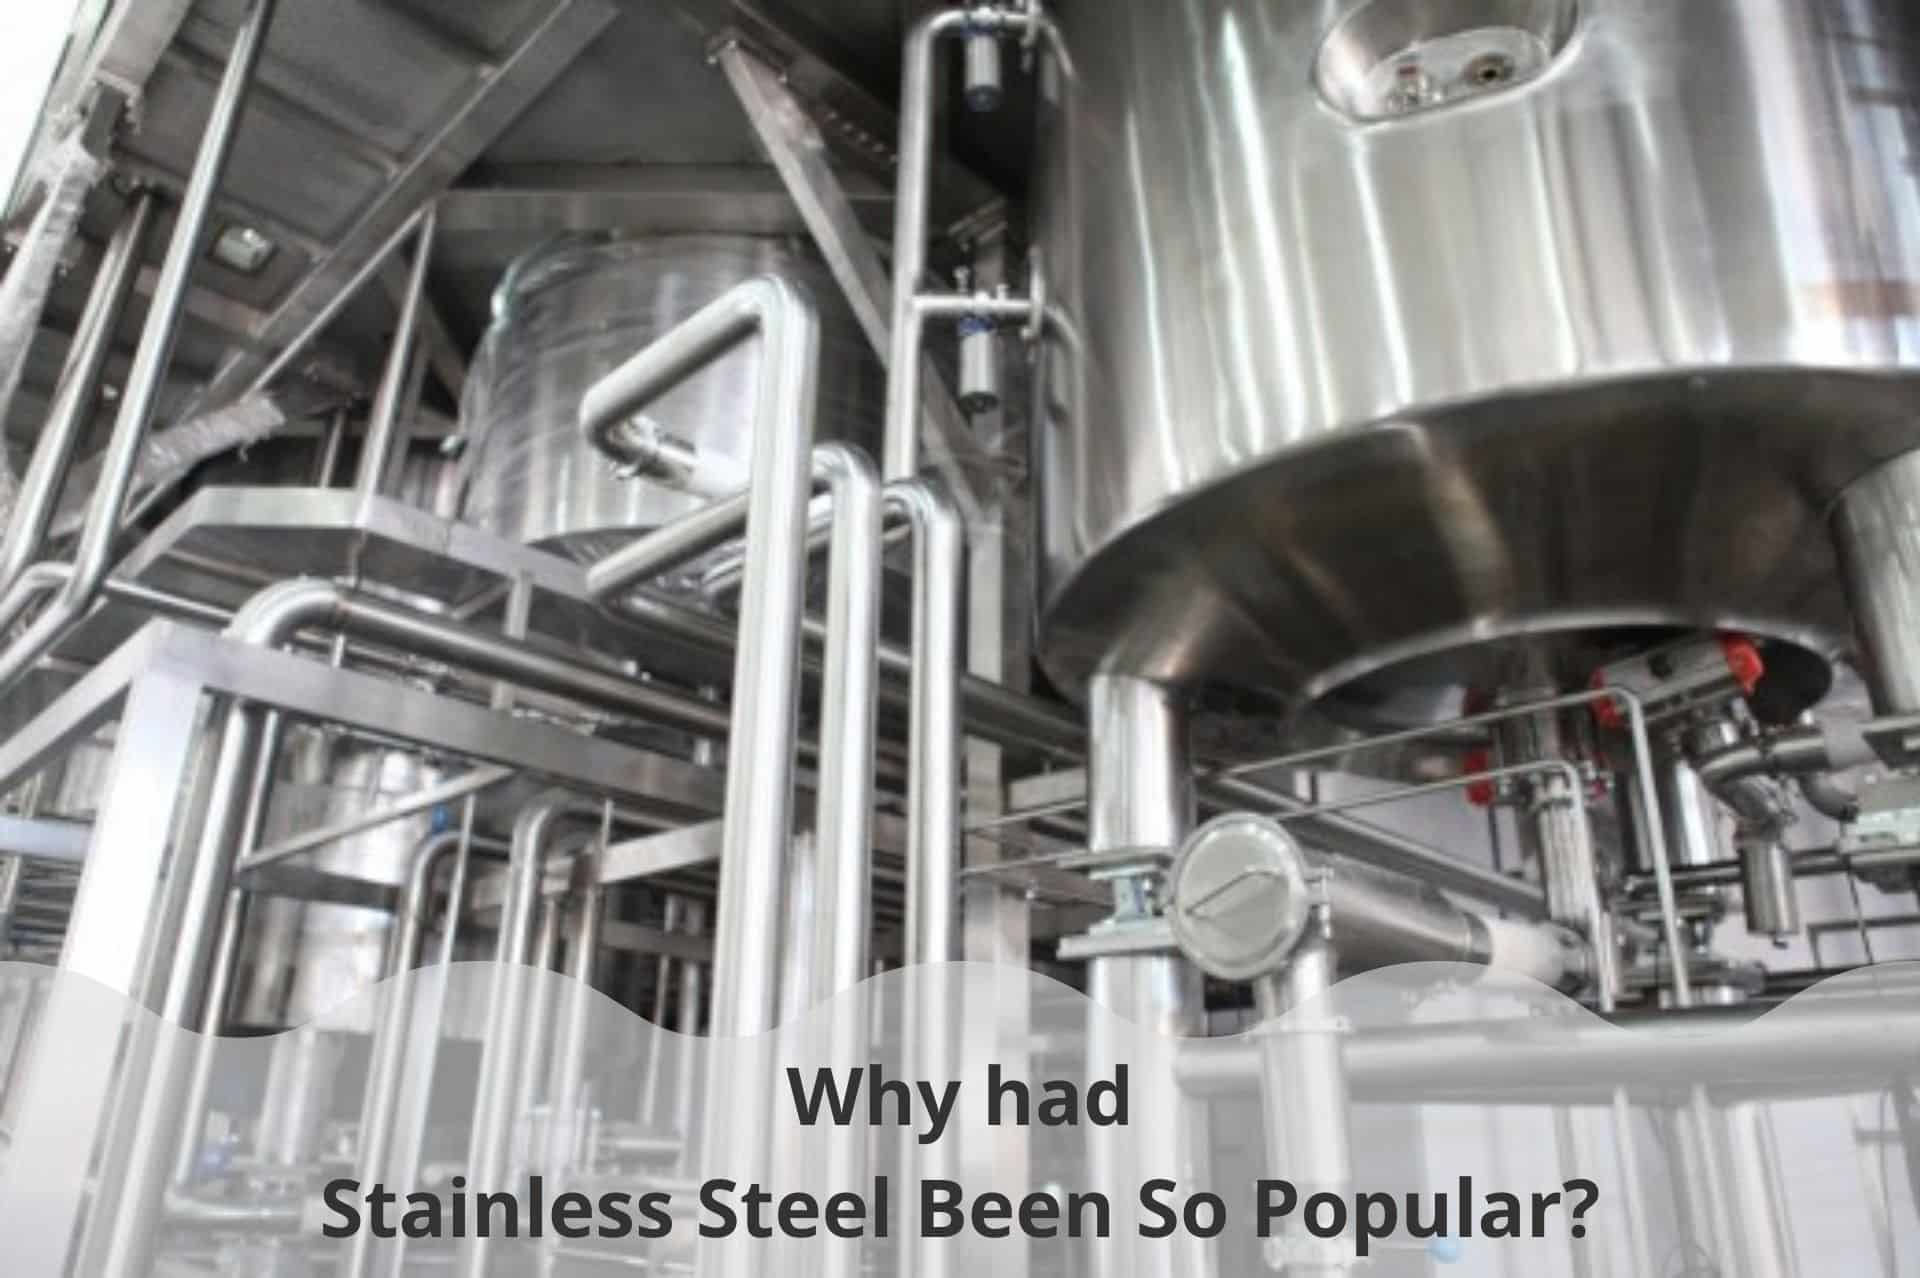 Why had Stainless Steel Been So Popular?